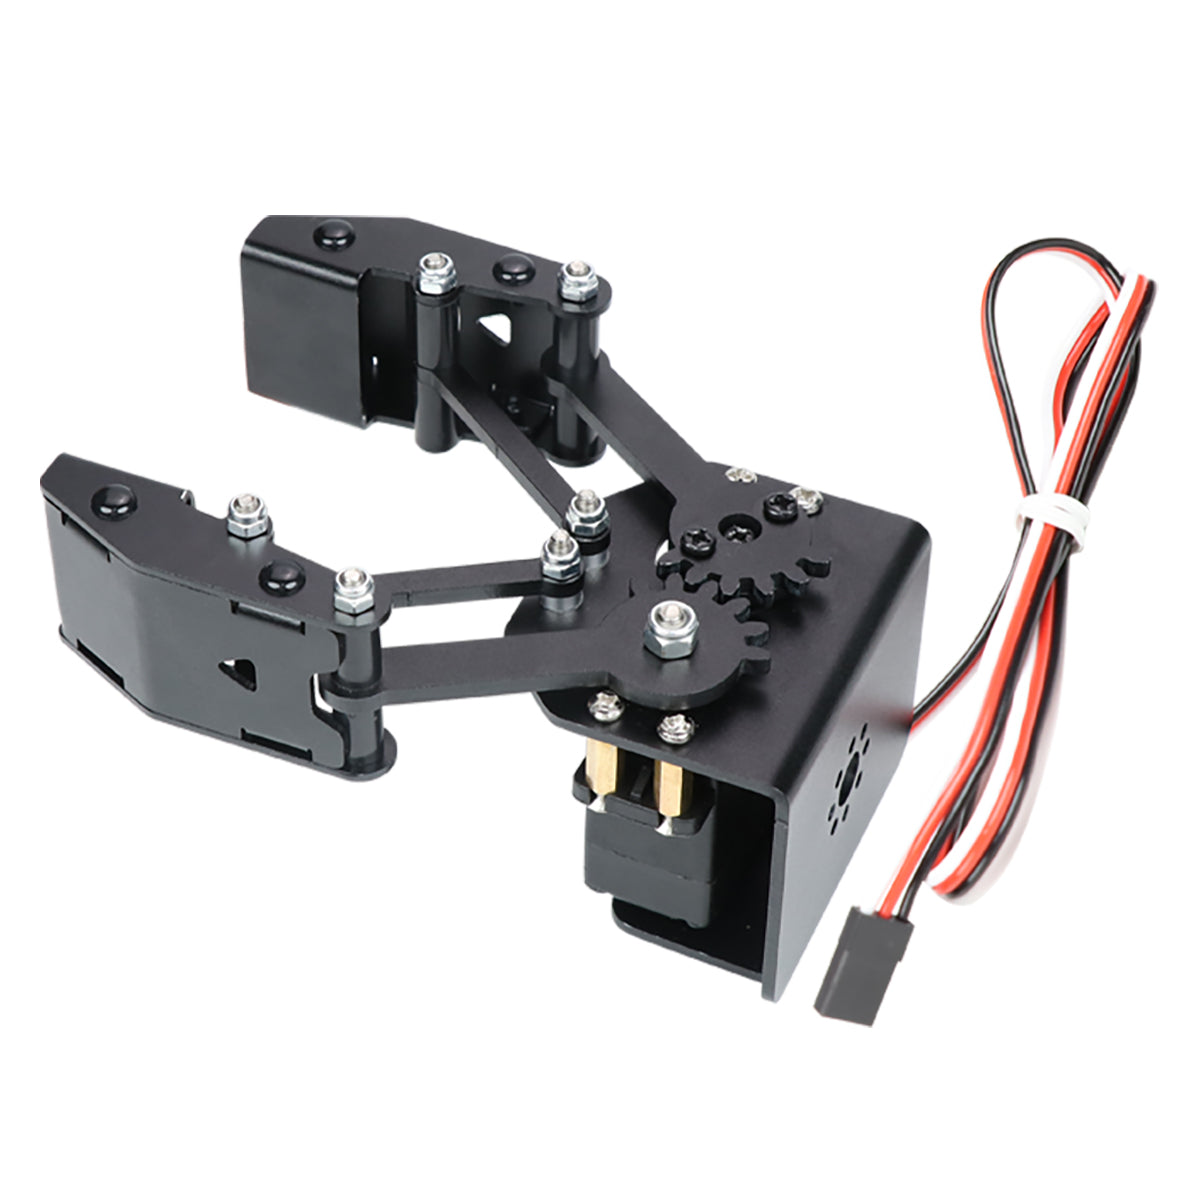 BigClaw Mechanical Gripper for Robot DIY